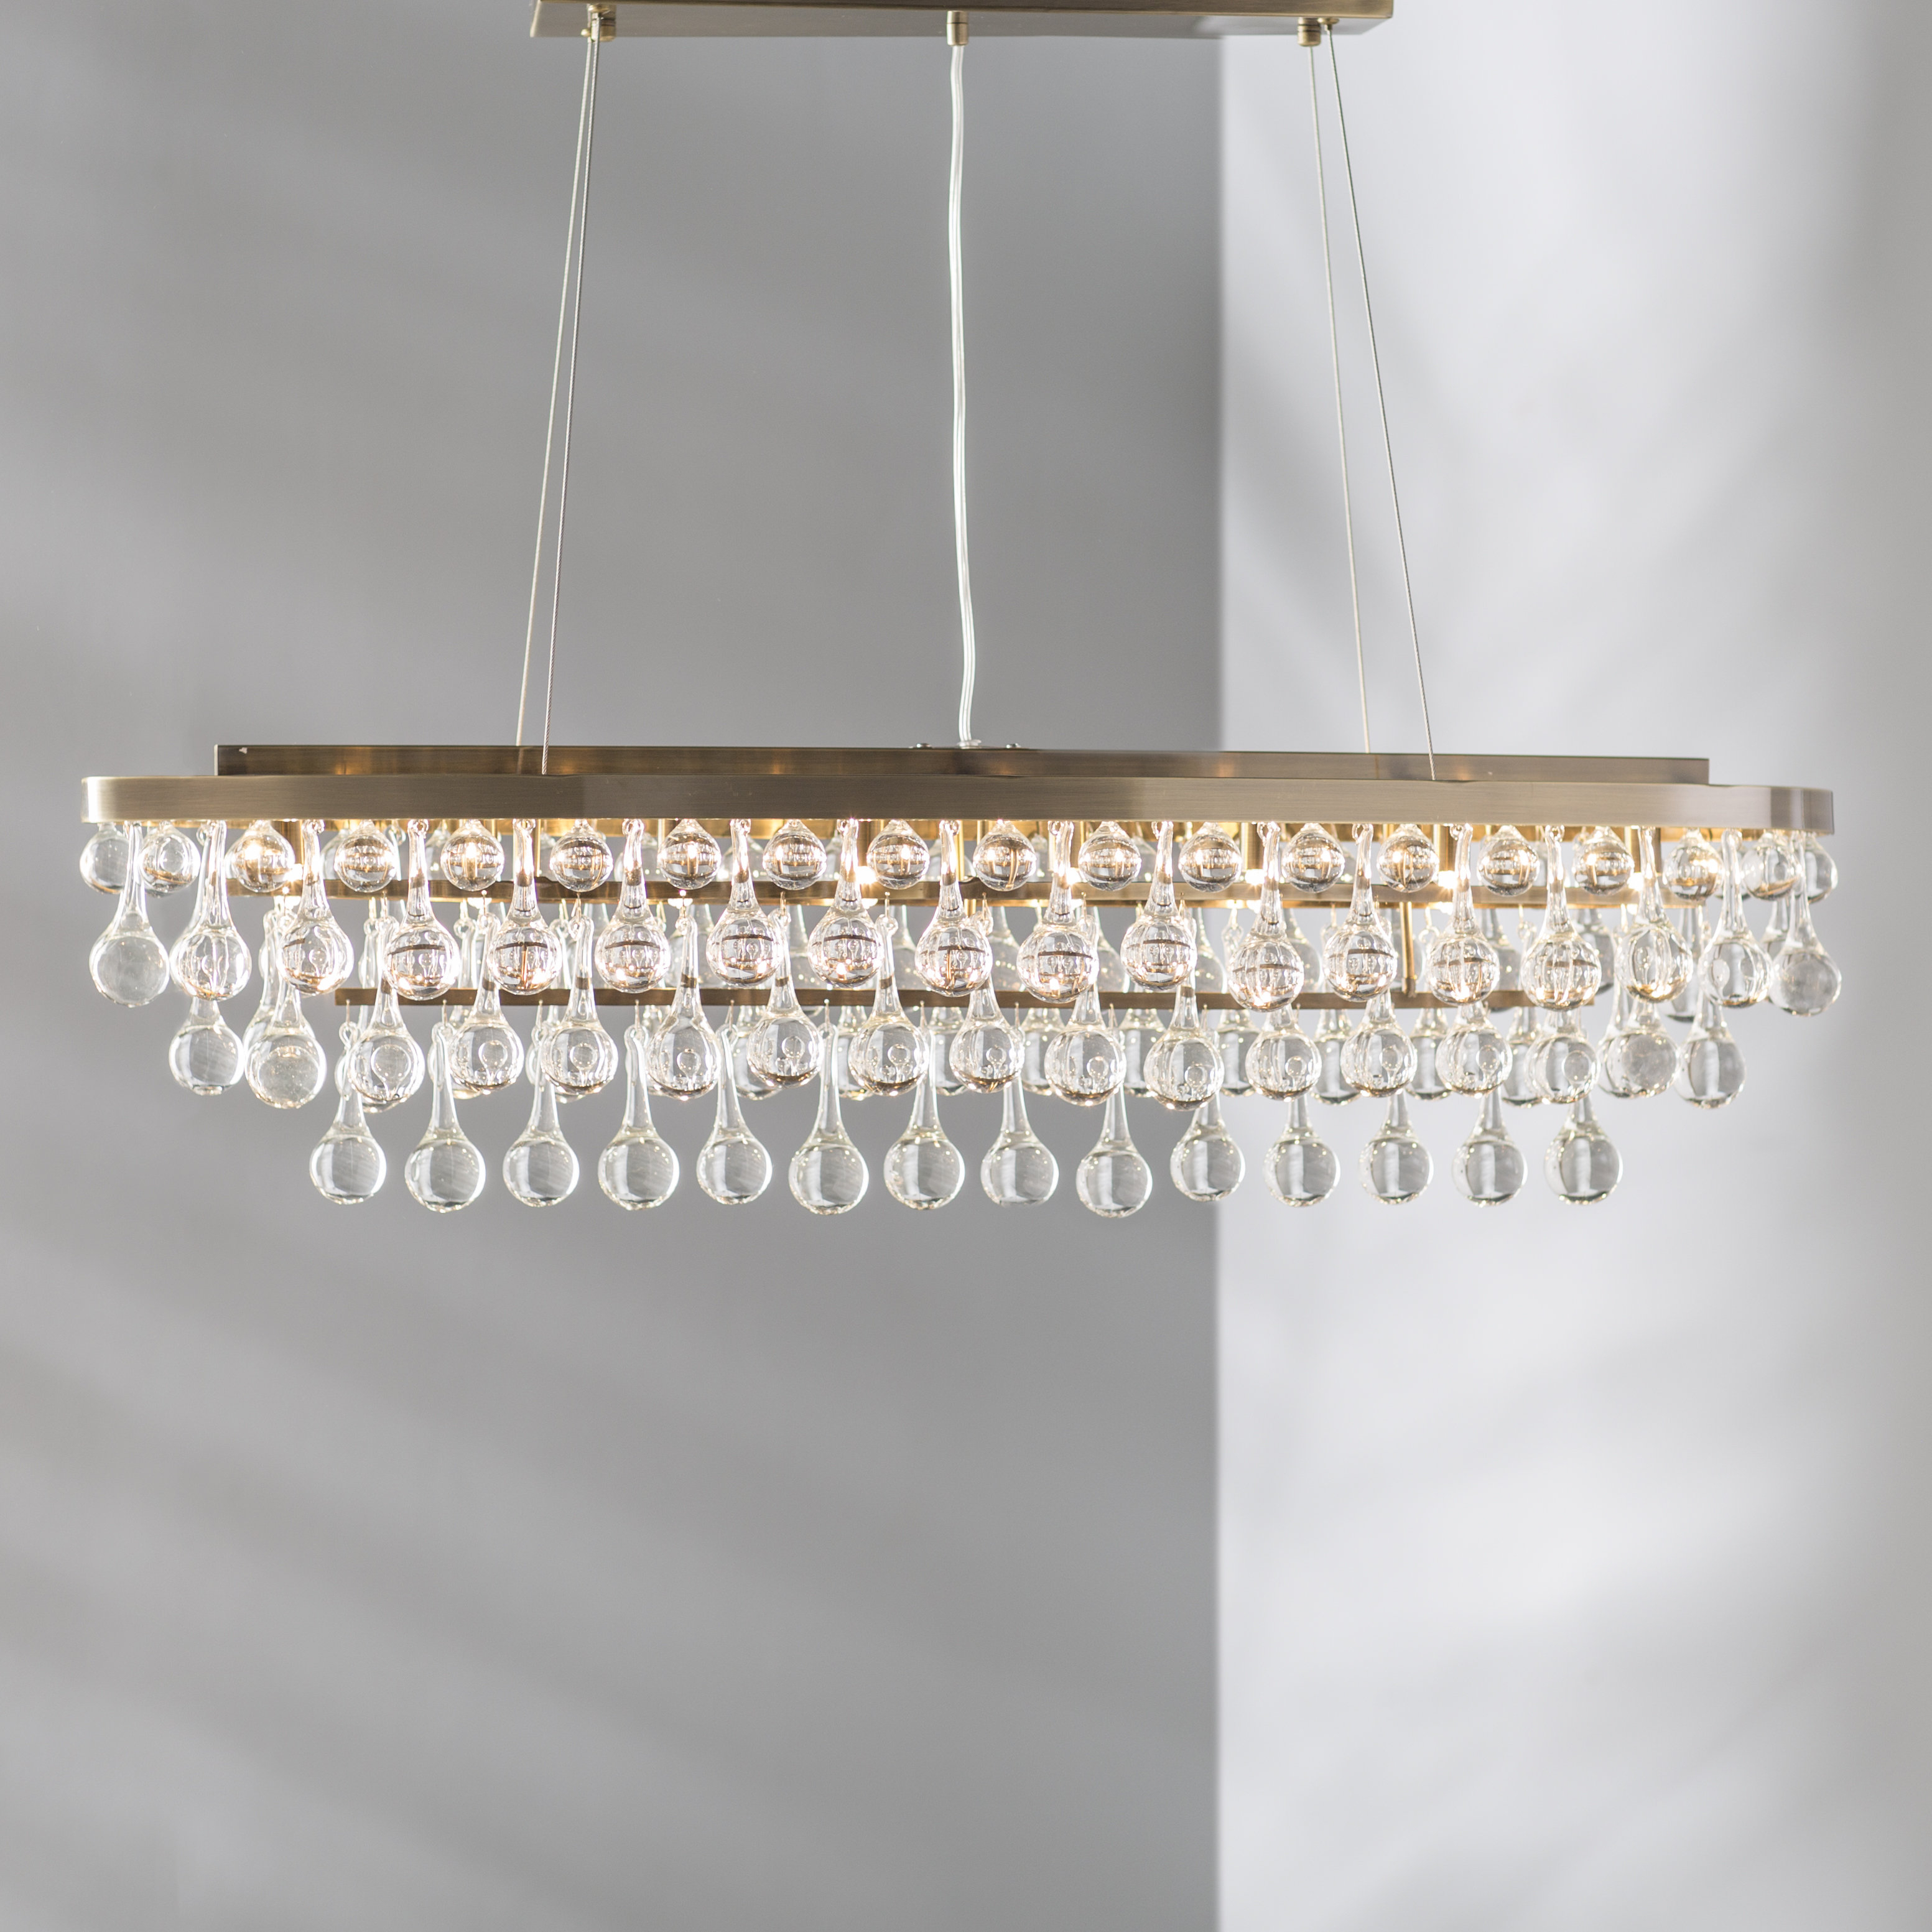 Fabrice 8 Light Crystal Chandelier Throughout Gracelyn 8 Light Kitchen Island Pendants (View 22 of 30)